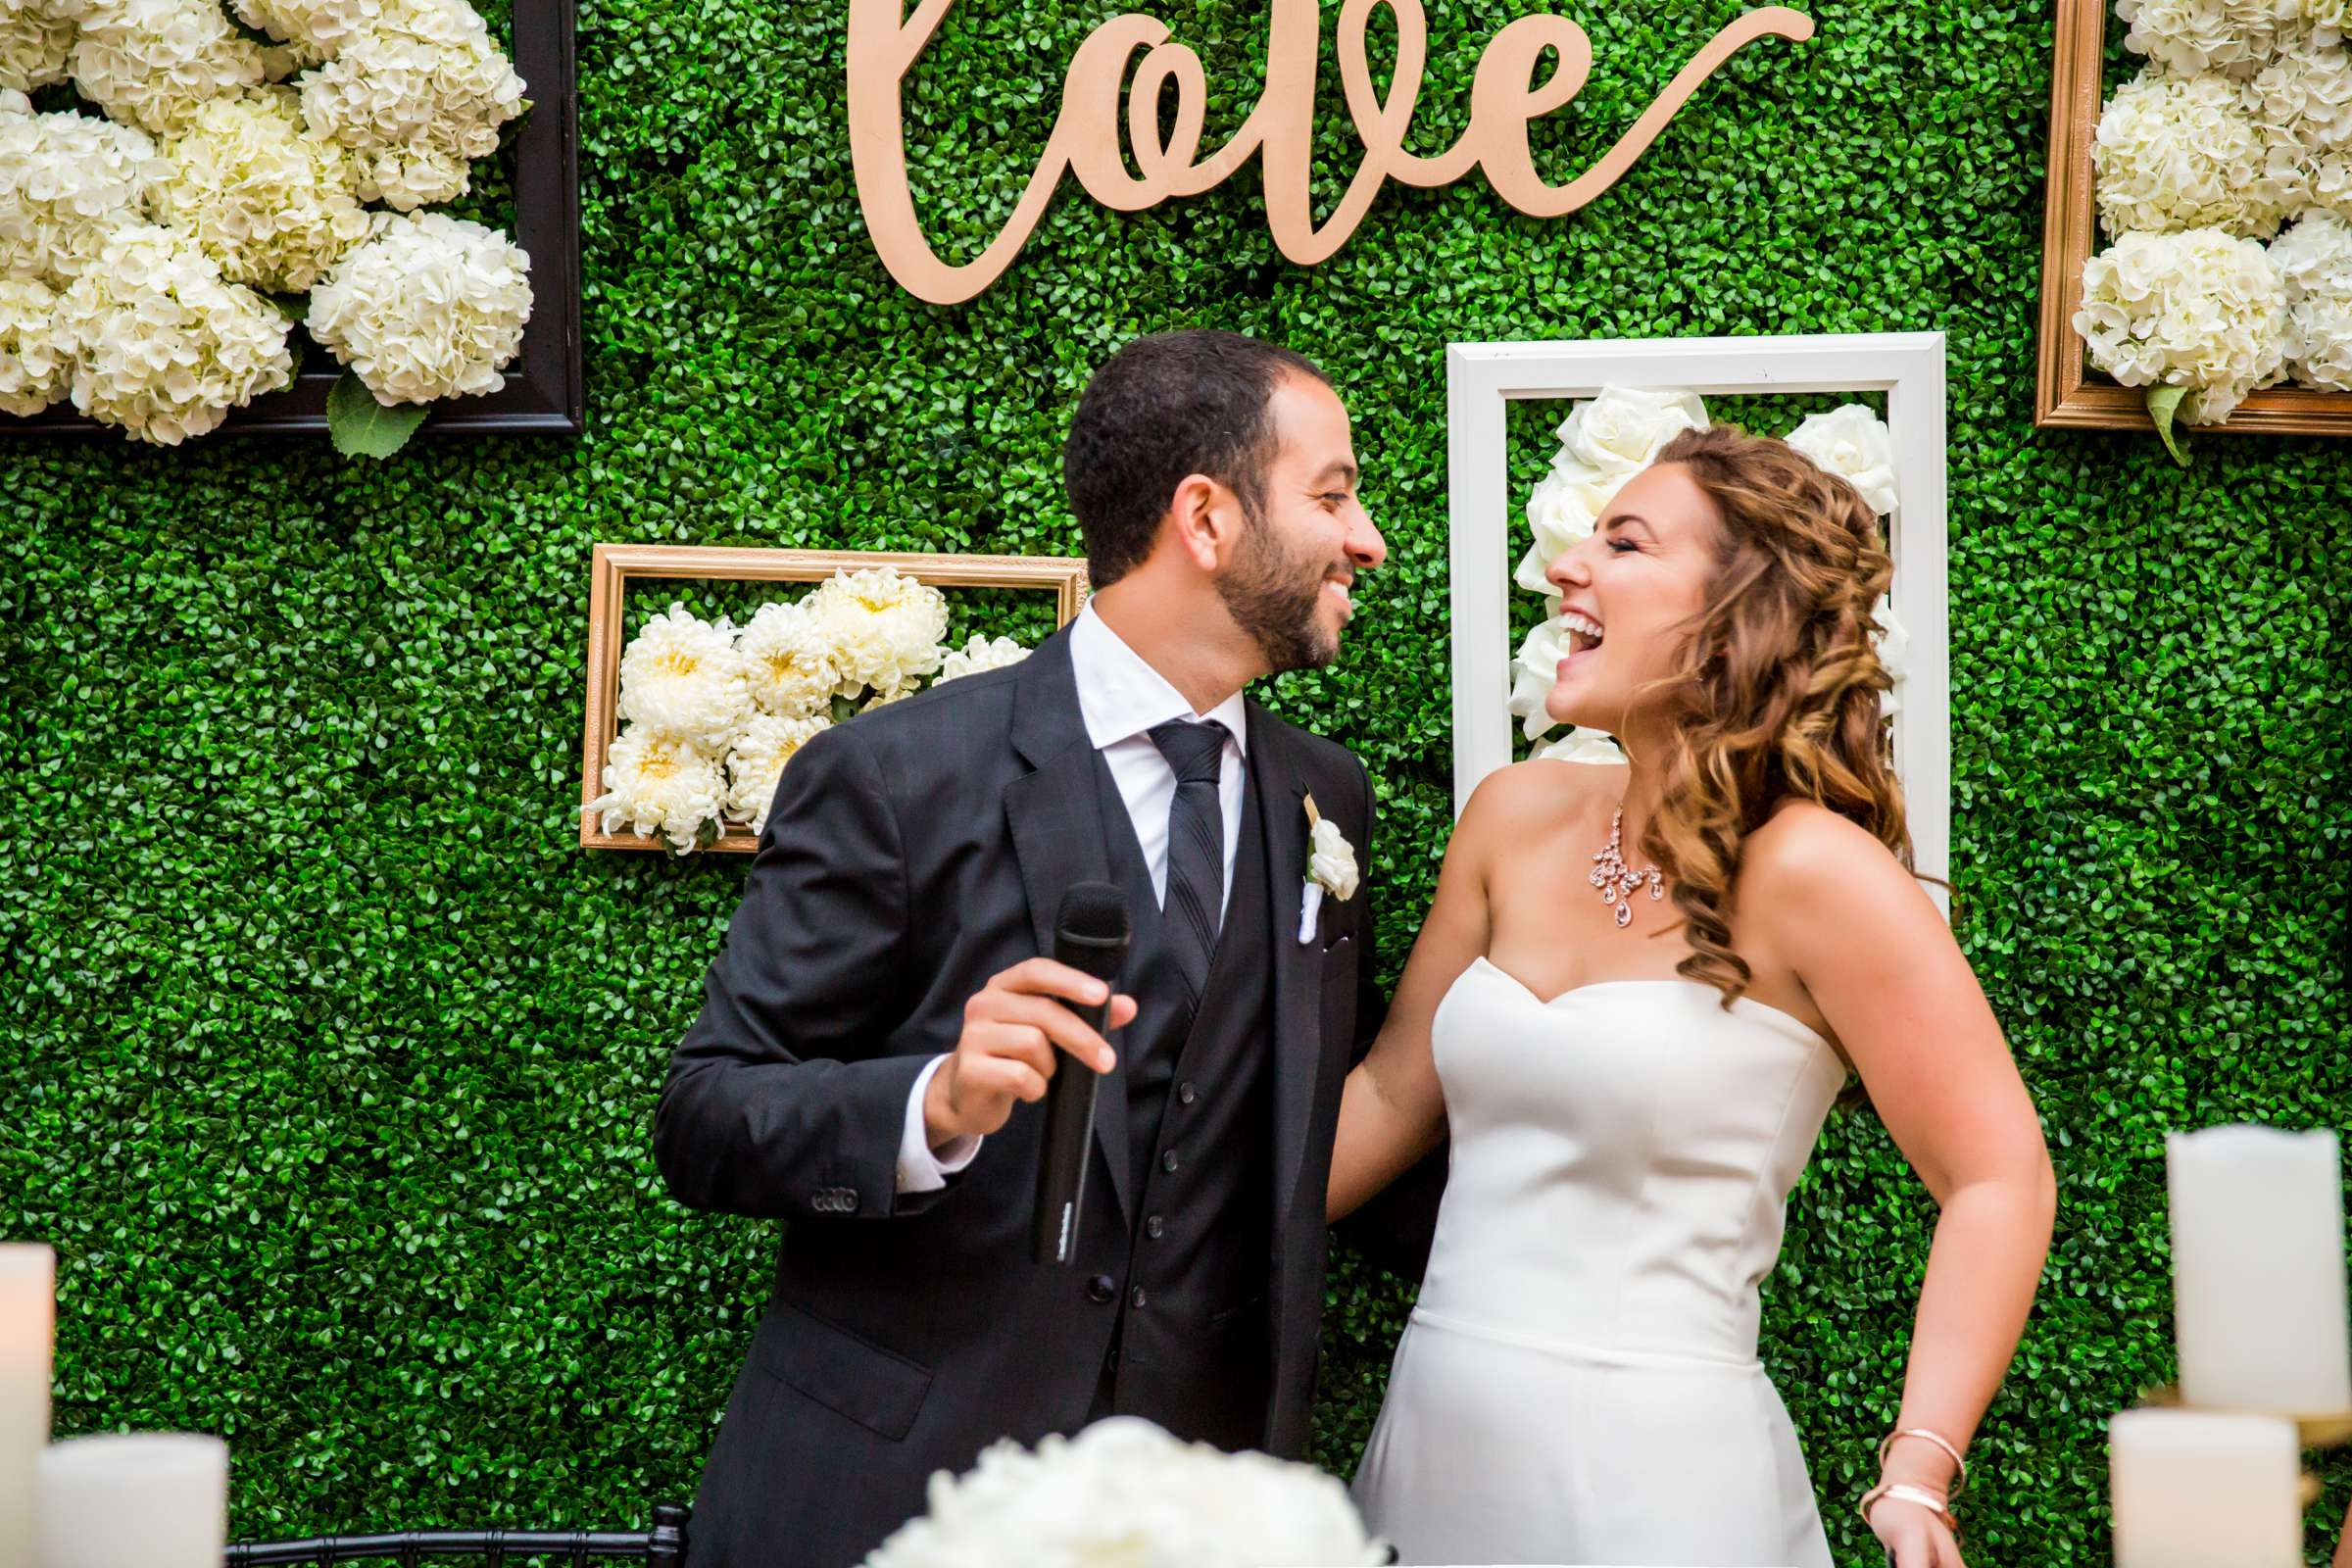 Reception, Candid moment at San Diego Museum of Art Wedding coordinated by First Comes Love Weddings & Events, Ruthie and Larry Wedding Photo #236743 by True Photography